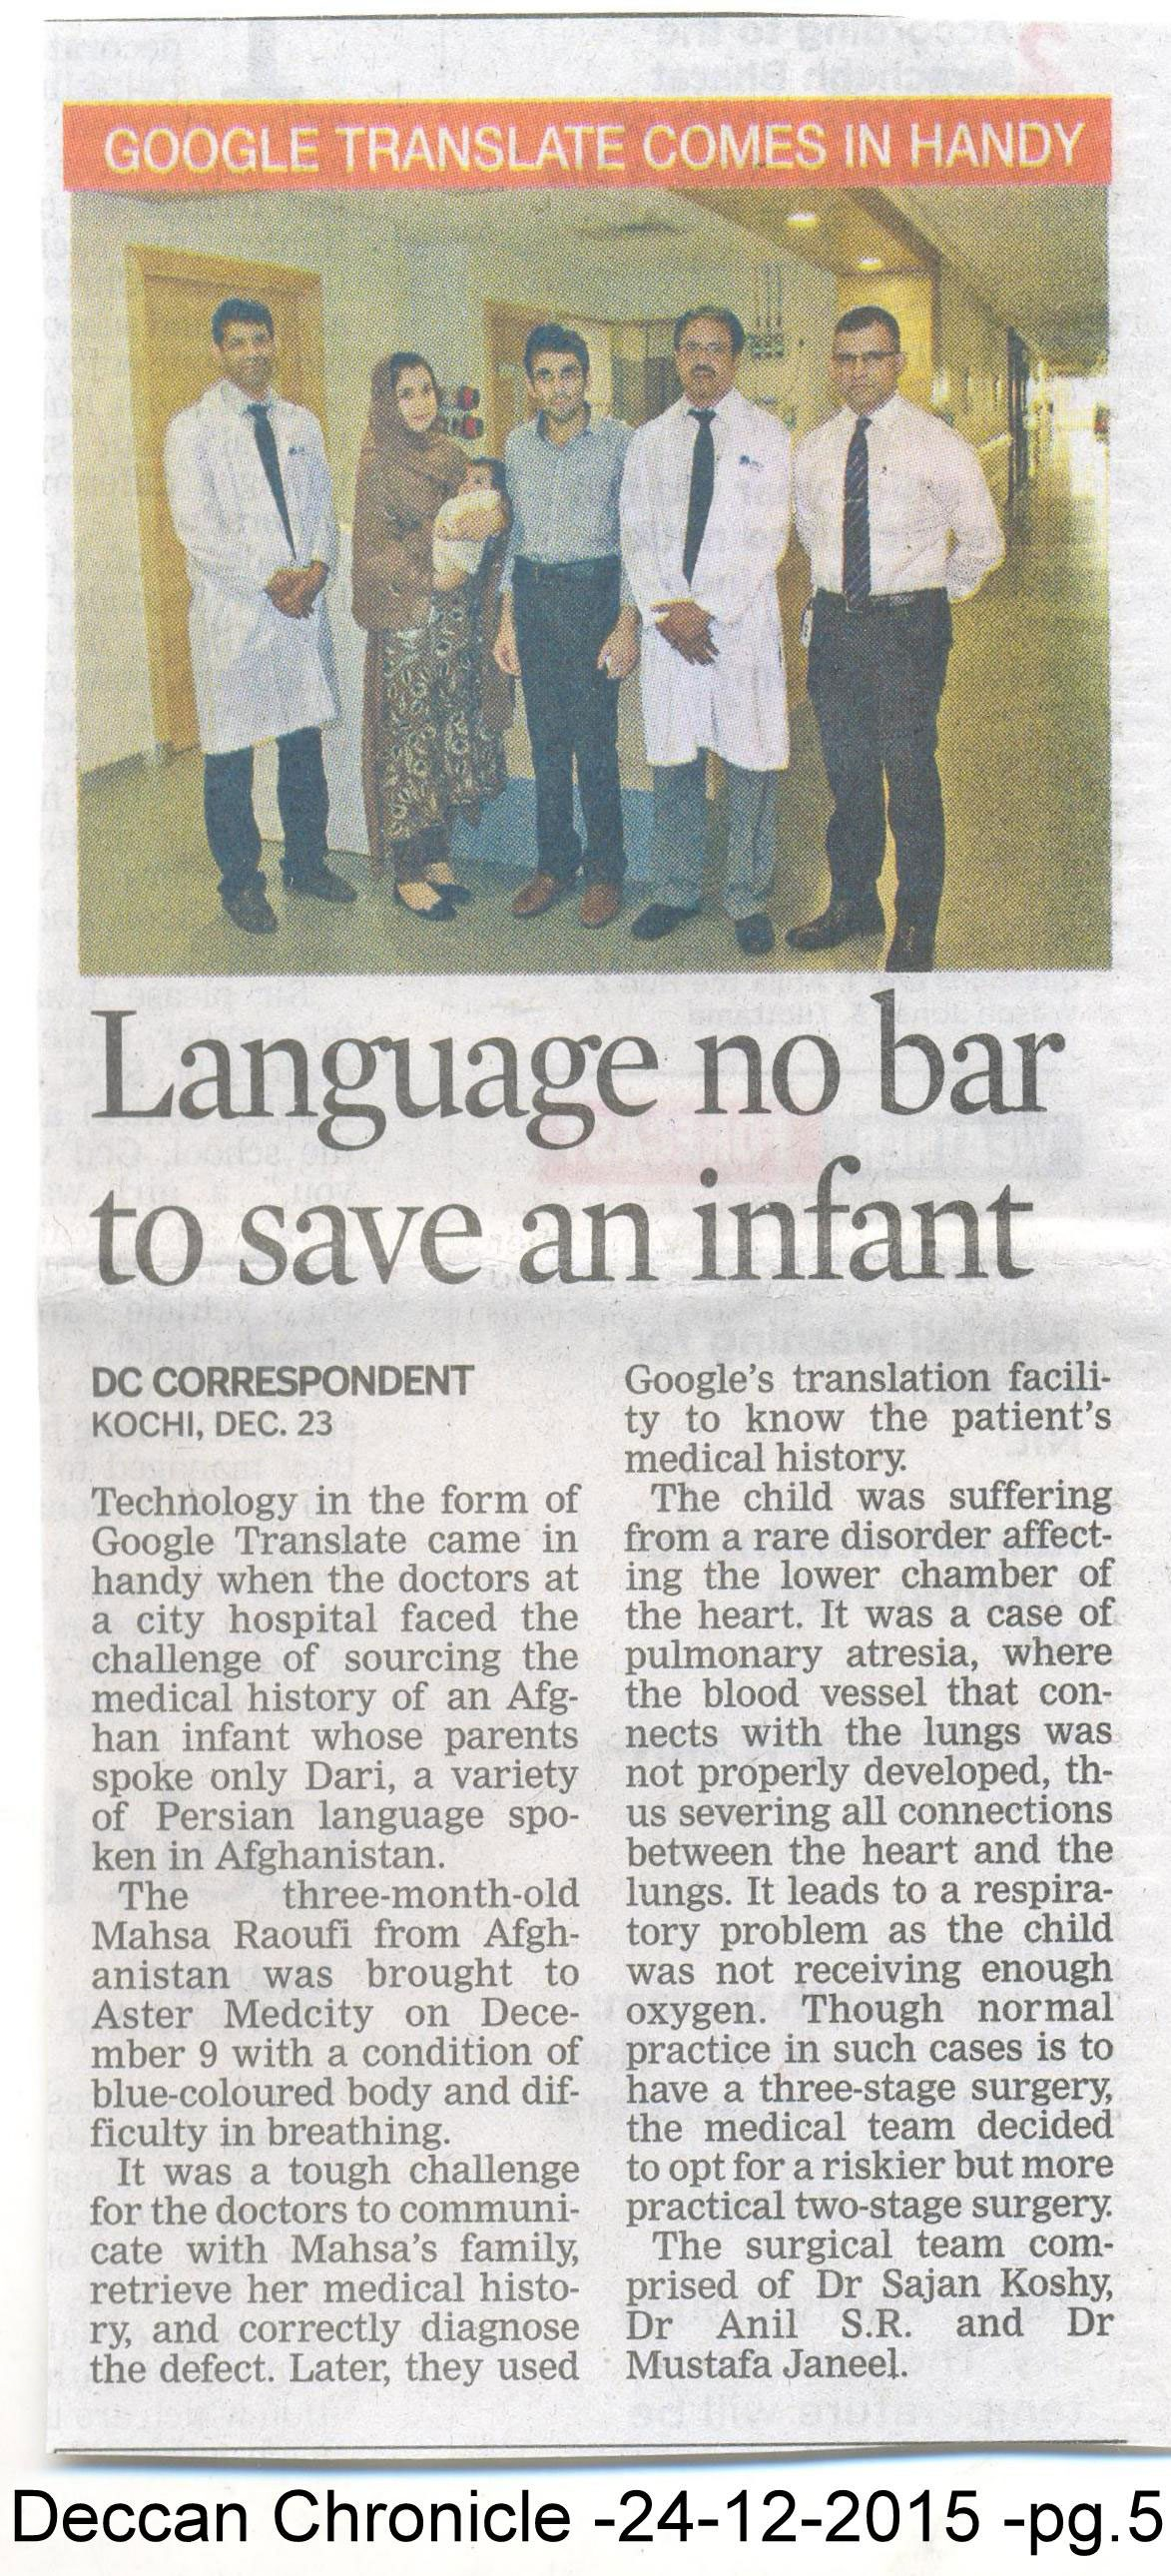 Deccan-Chronicle-24-12-2pg.5